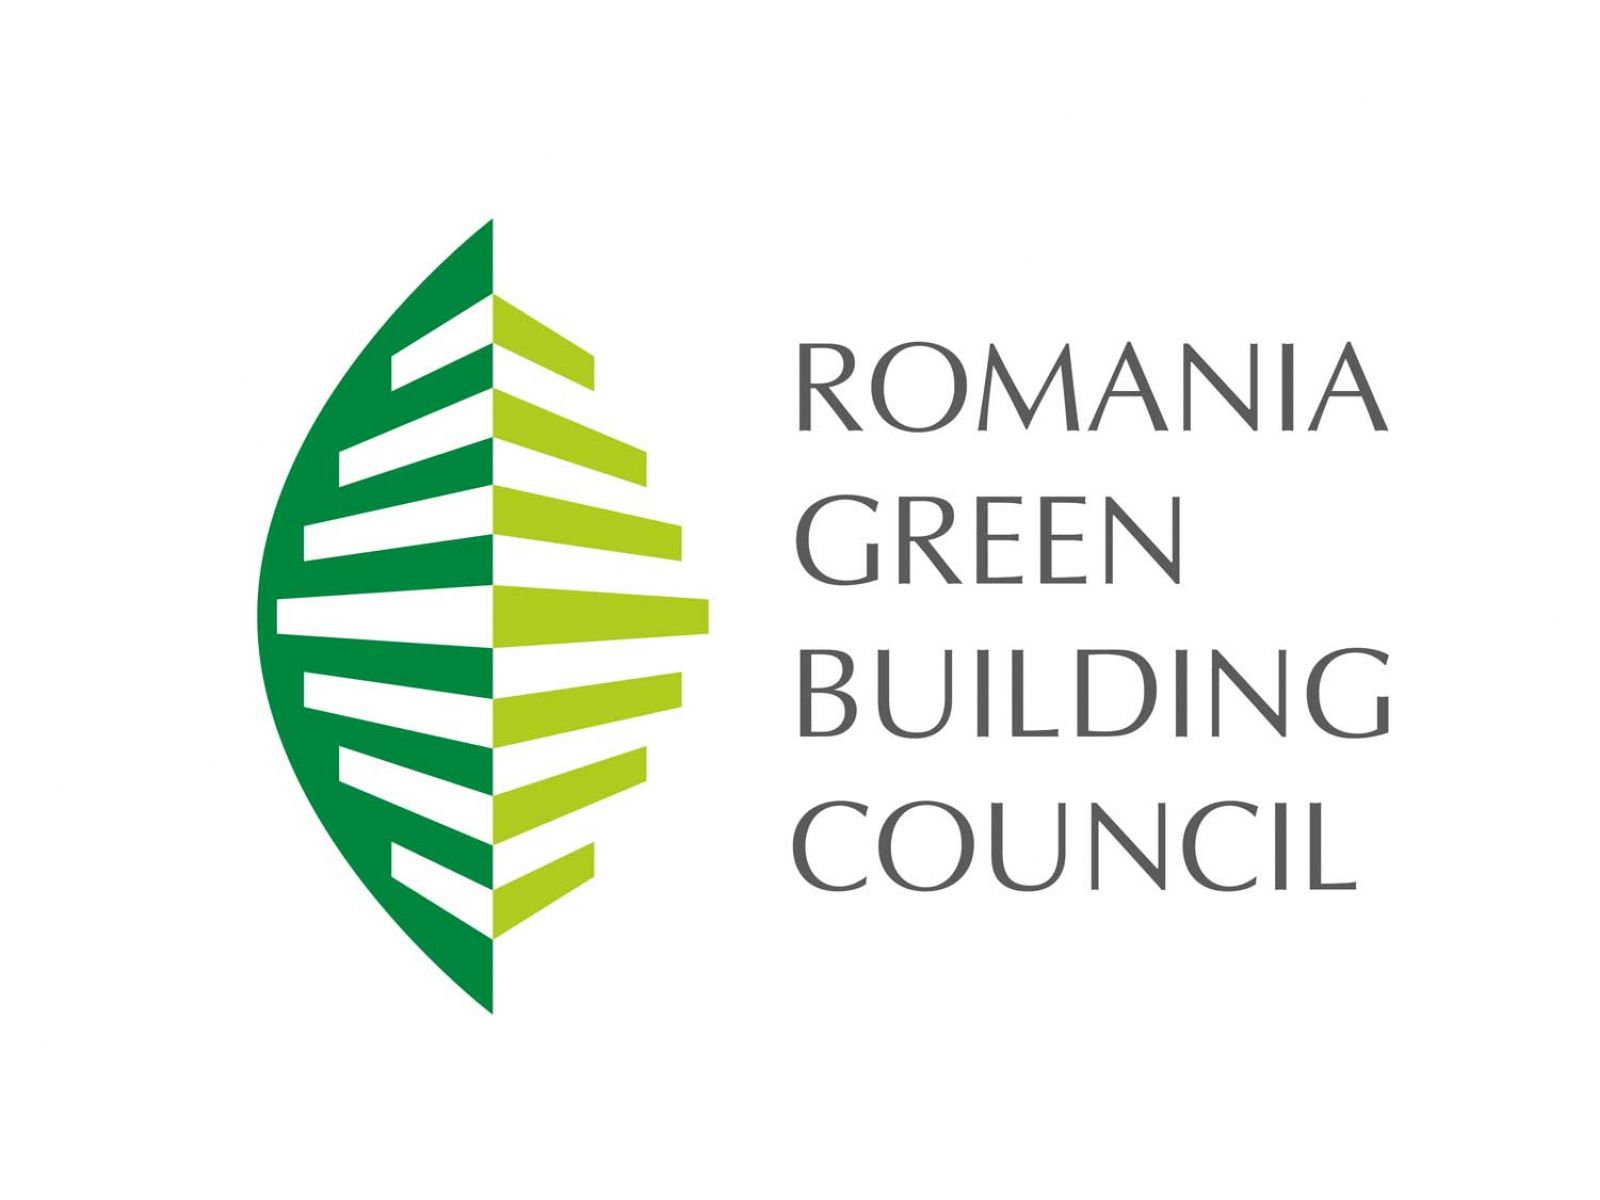 Romania Green Building Council - Letter of Recognition